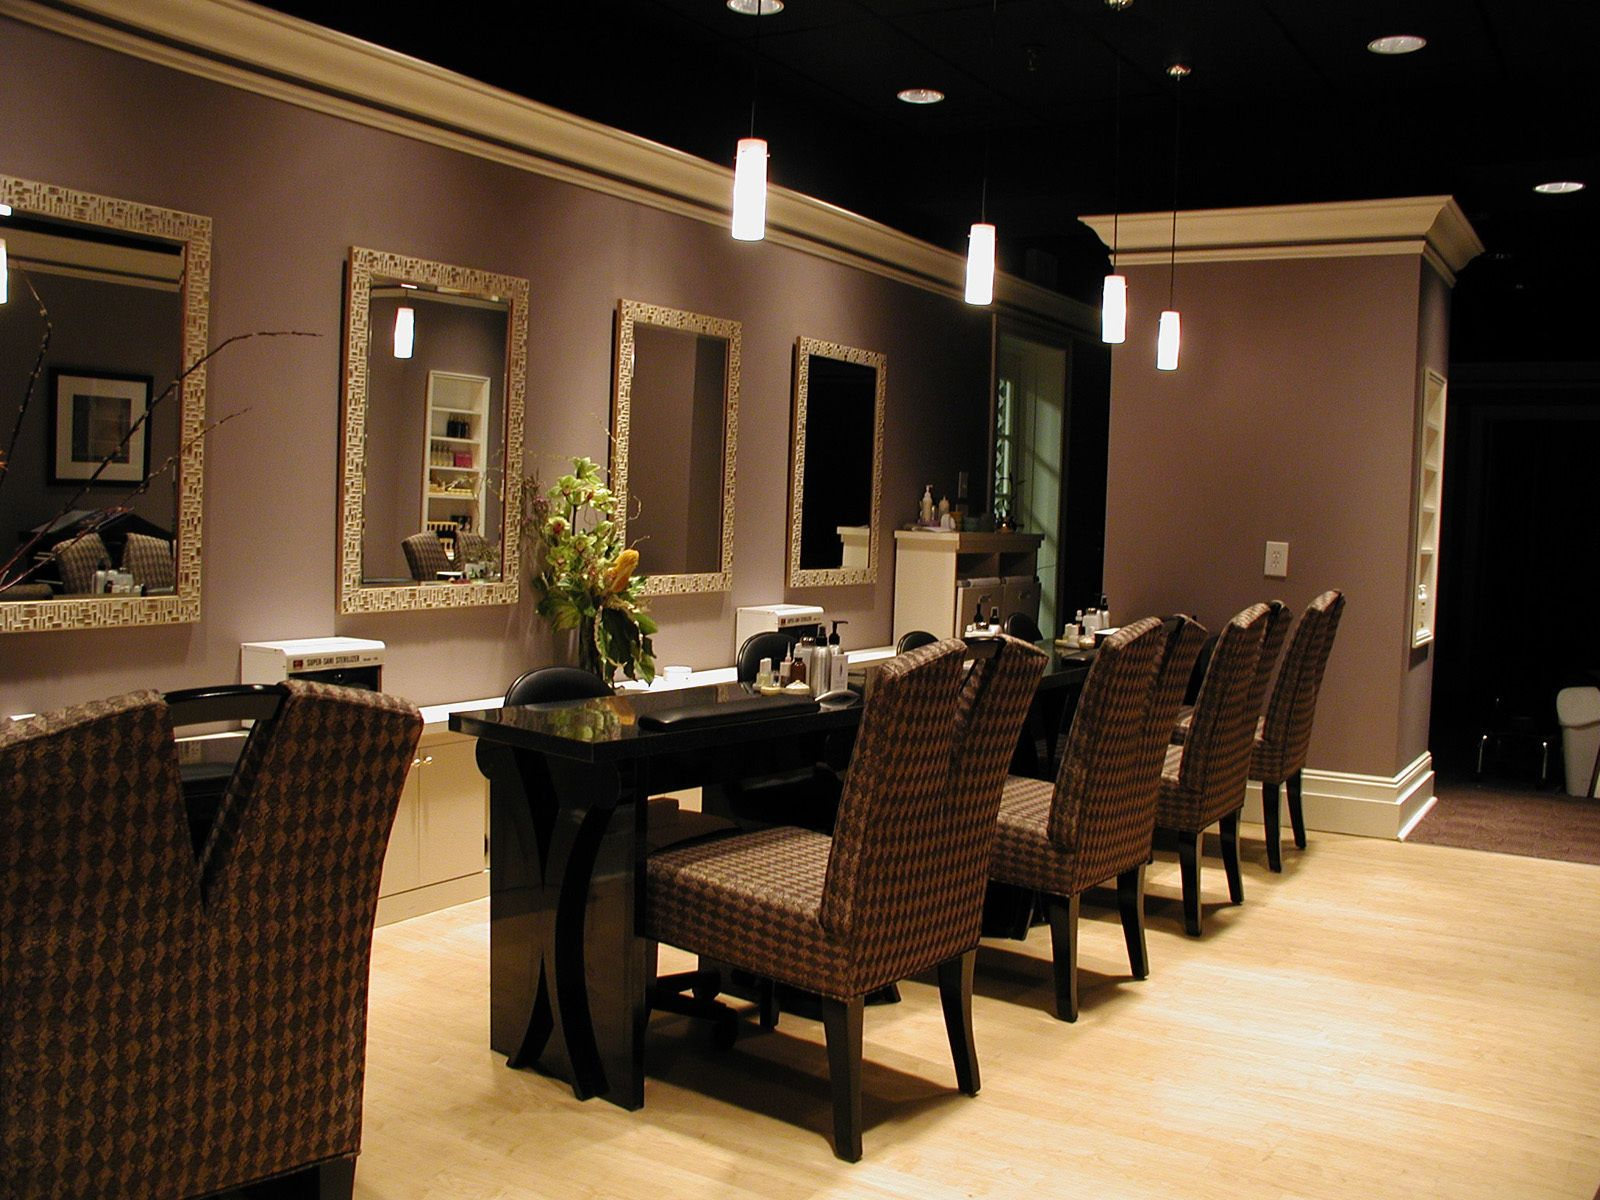 Charming Pevonia Spa at Serenity Salon and Spa in Chesterton ...